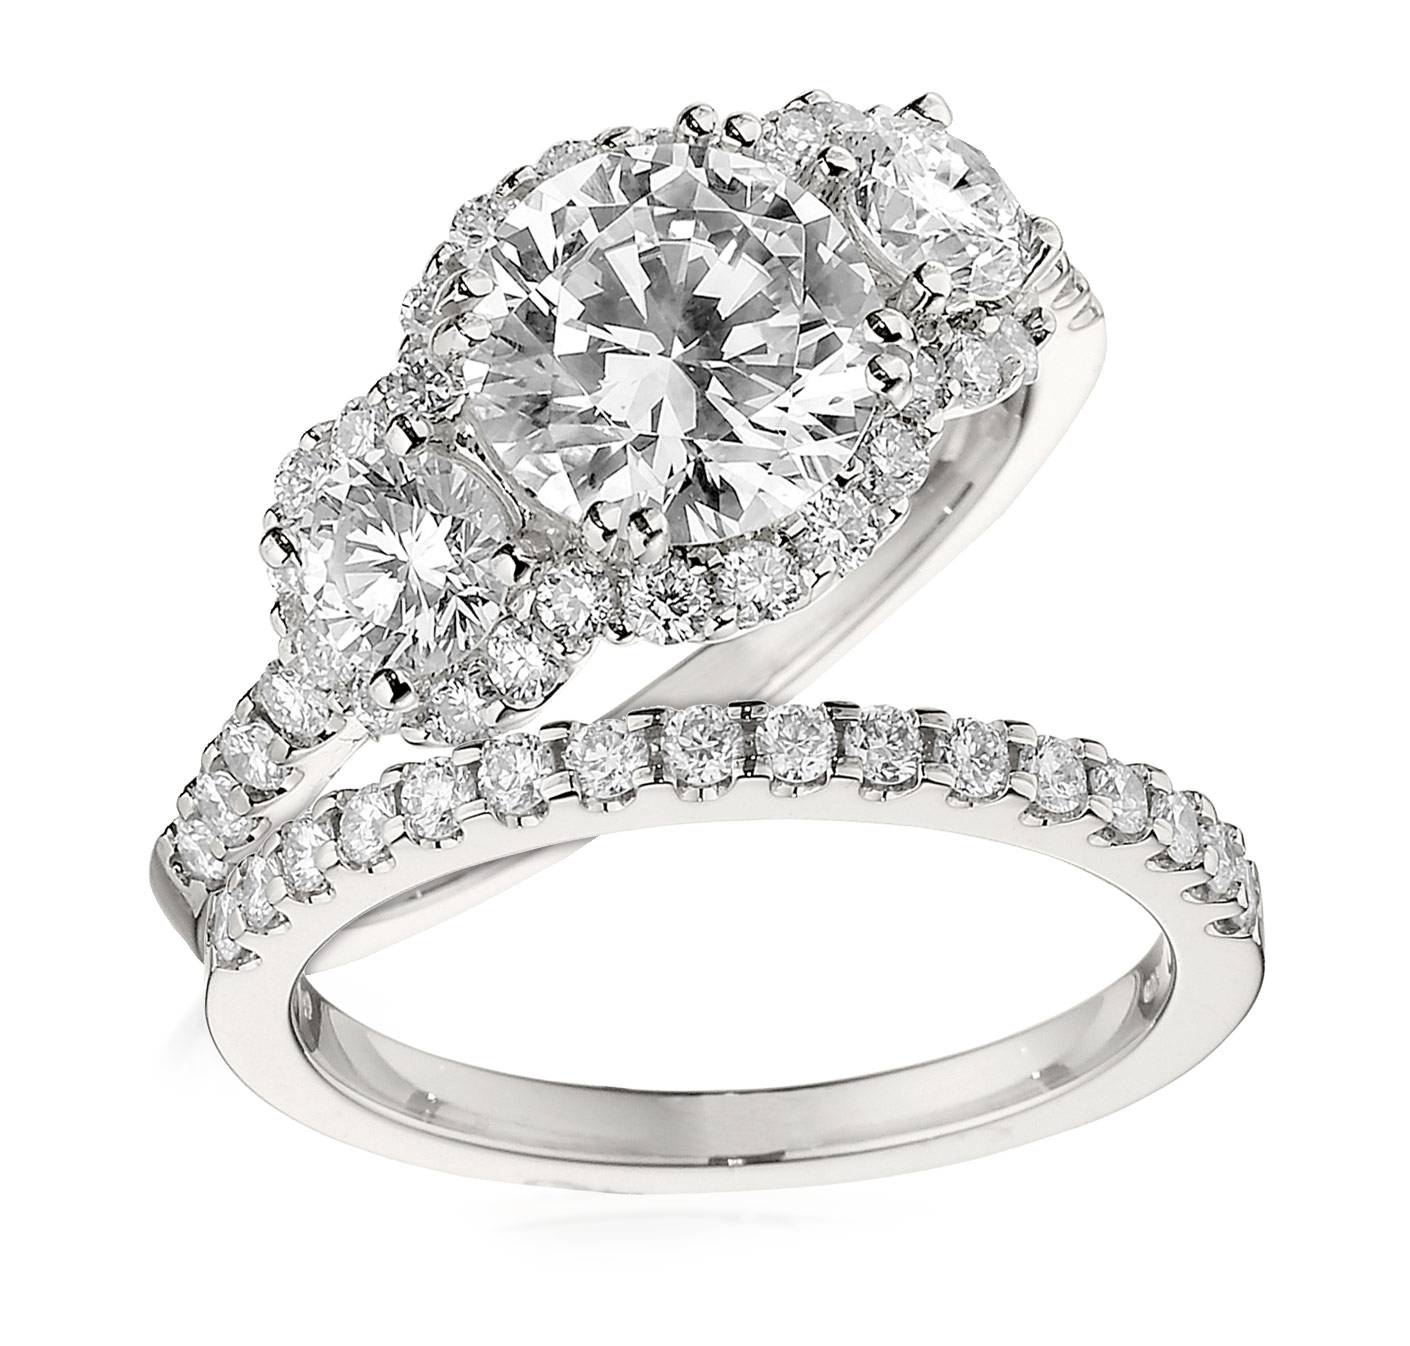 Gottlieb & Sons Engagement Ring Set: Three Stone Halo Regarding 3 Stone Halo Engagement Ring Settings (View 6 of 15)